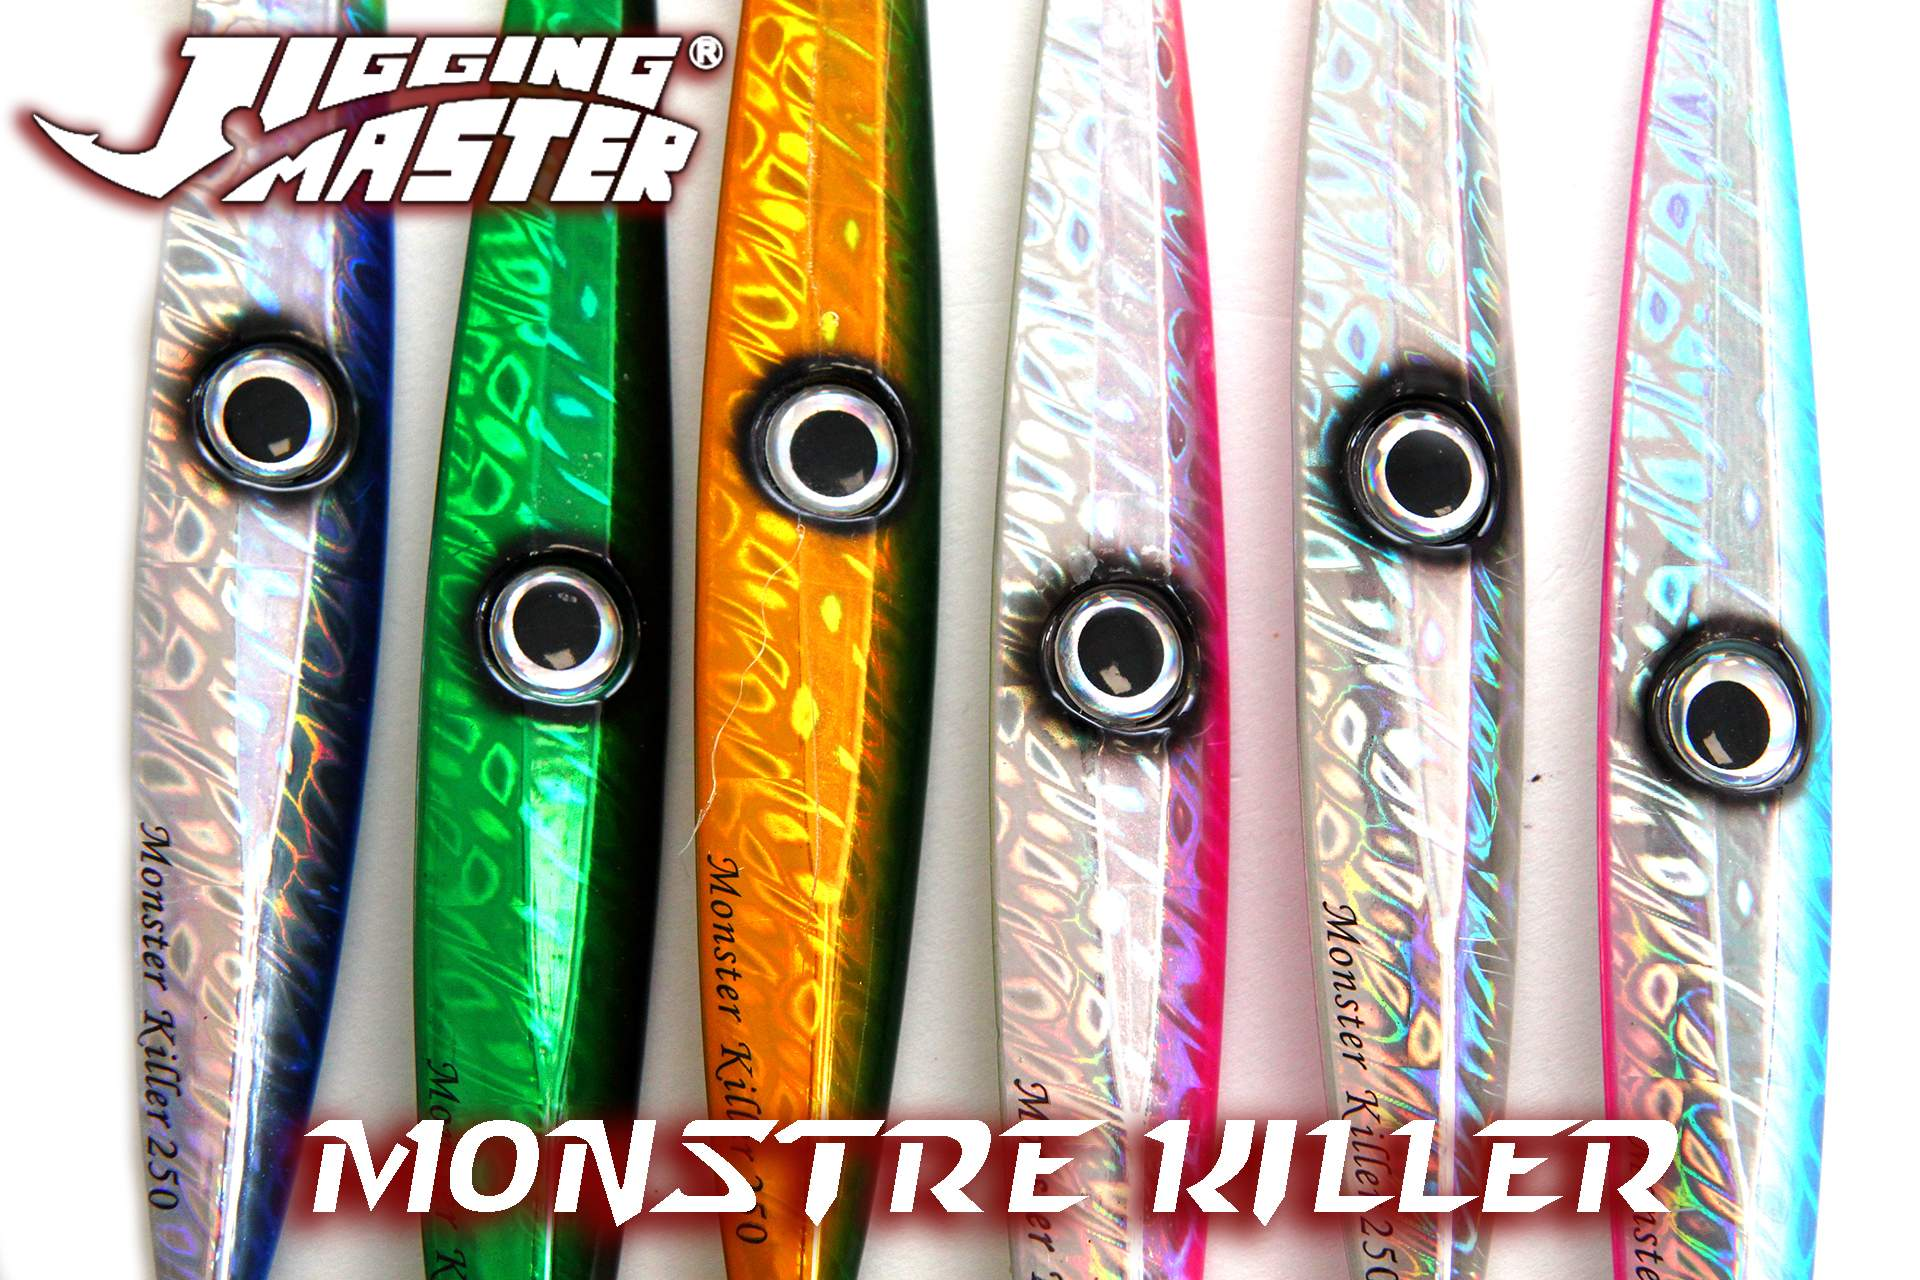 Пилькер Jigging Master Monster Killer jig #8